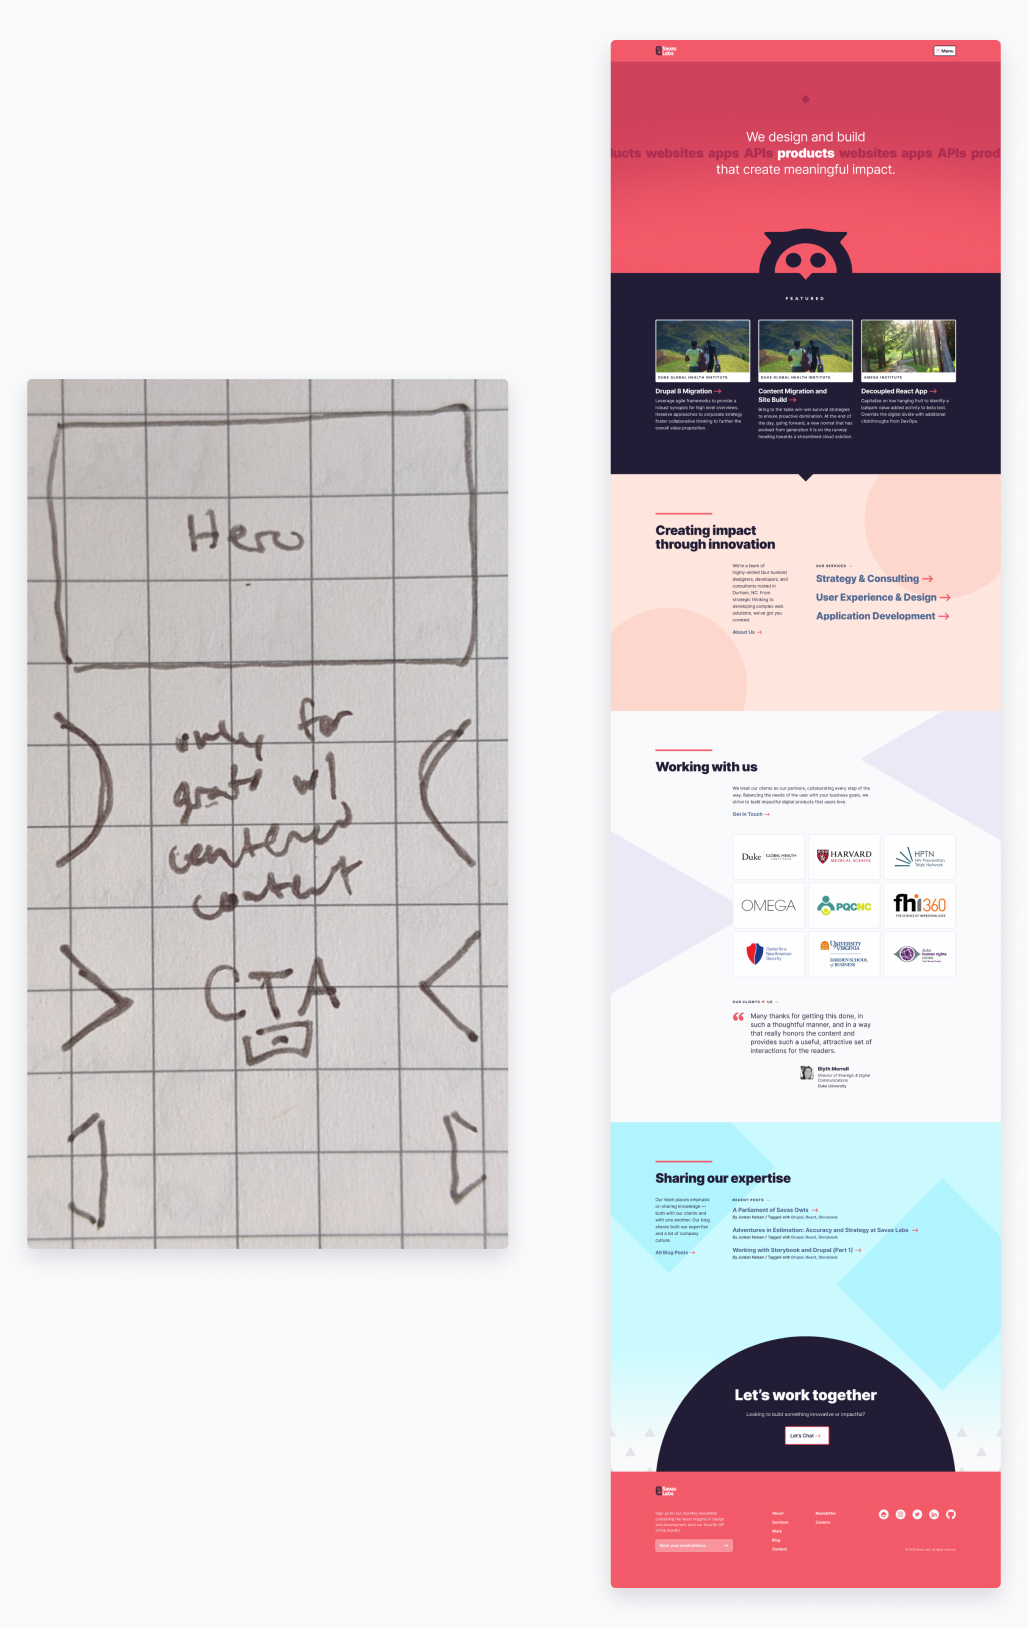 a side-by-side showing a sketch of the homepage and the finished design composition